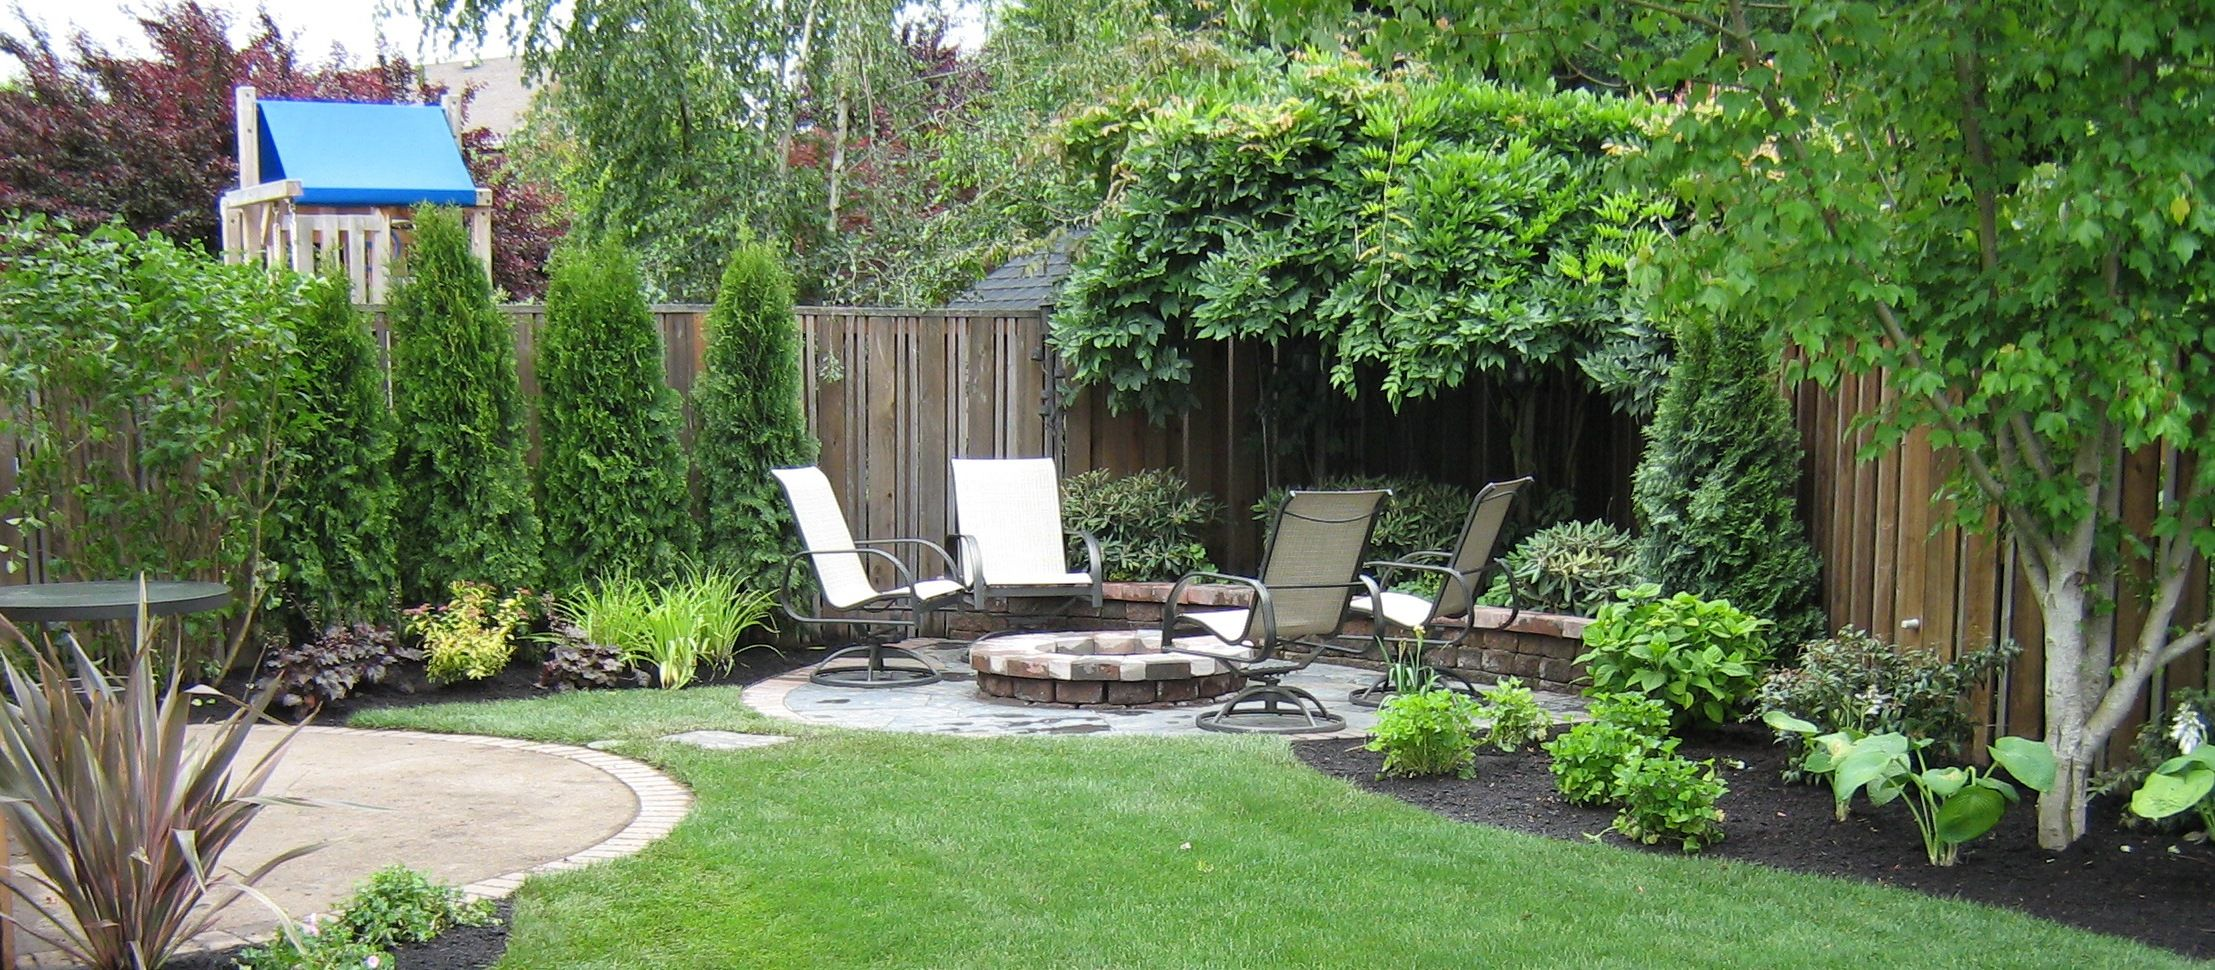 Small backyard landscaping ideas photos garden design Landscape garden design ideas